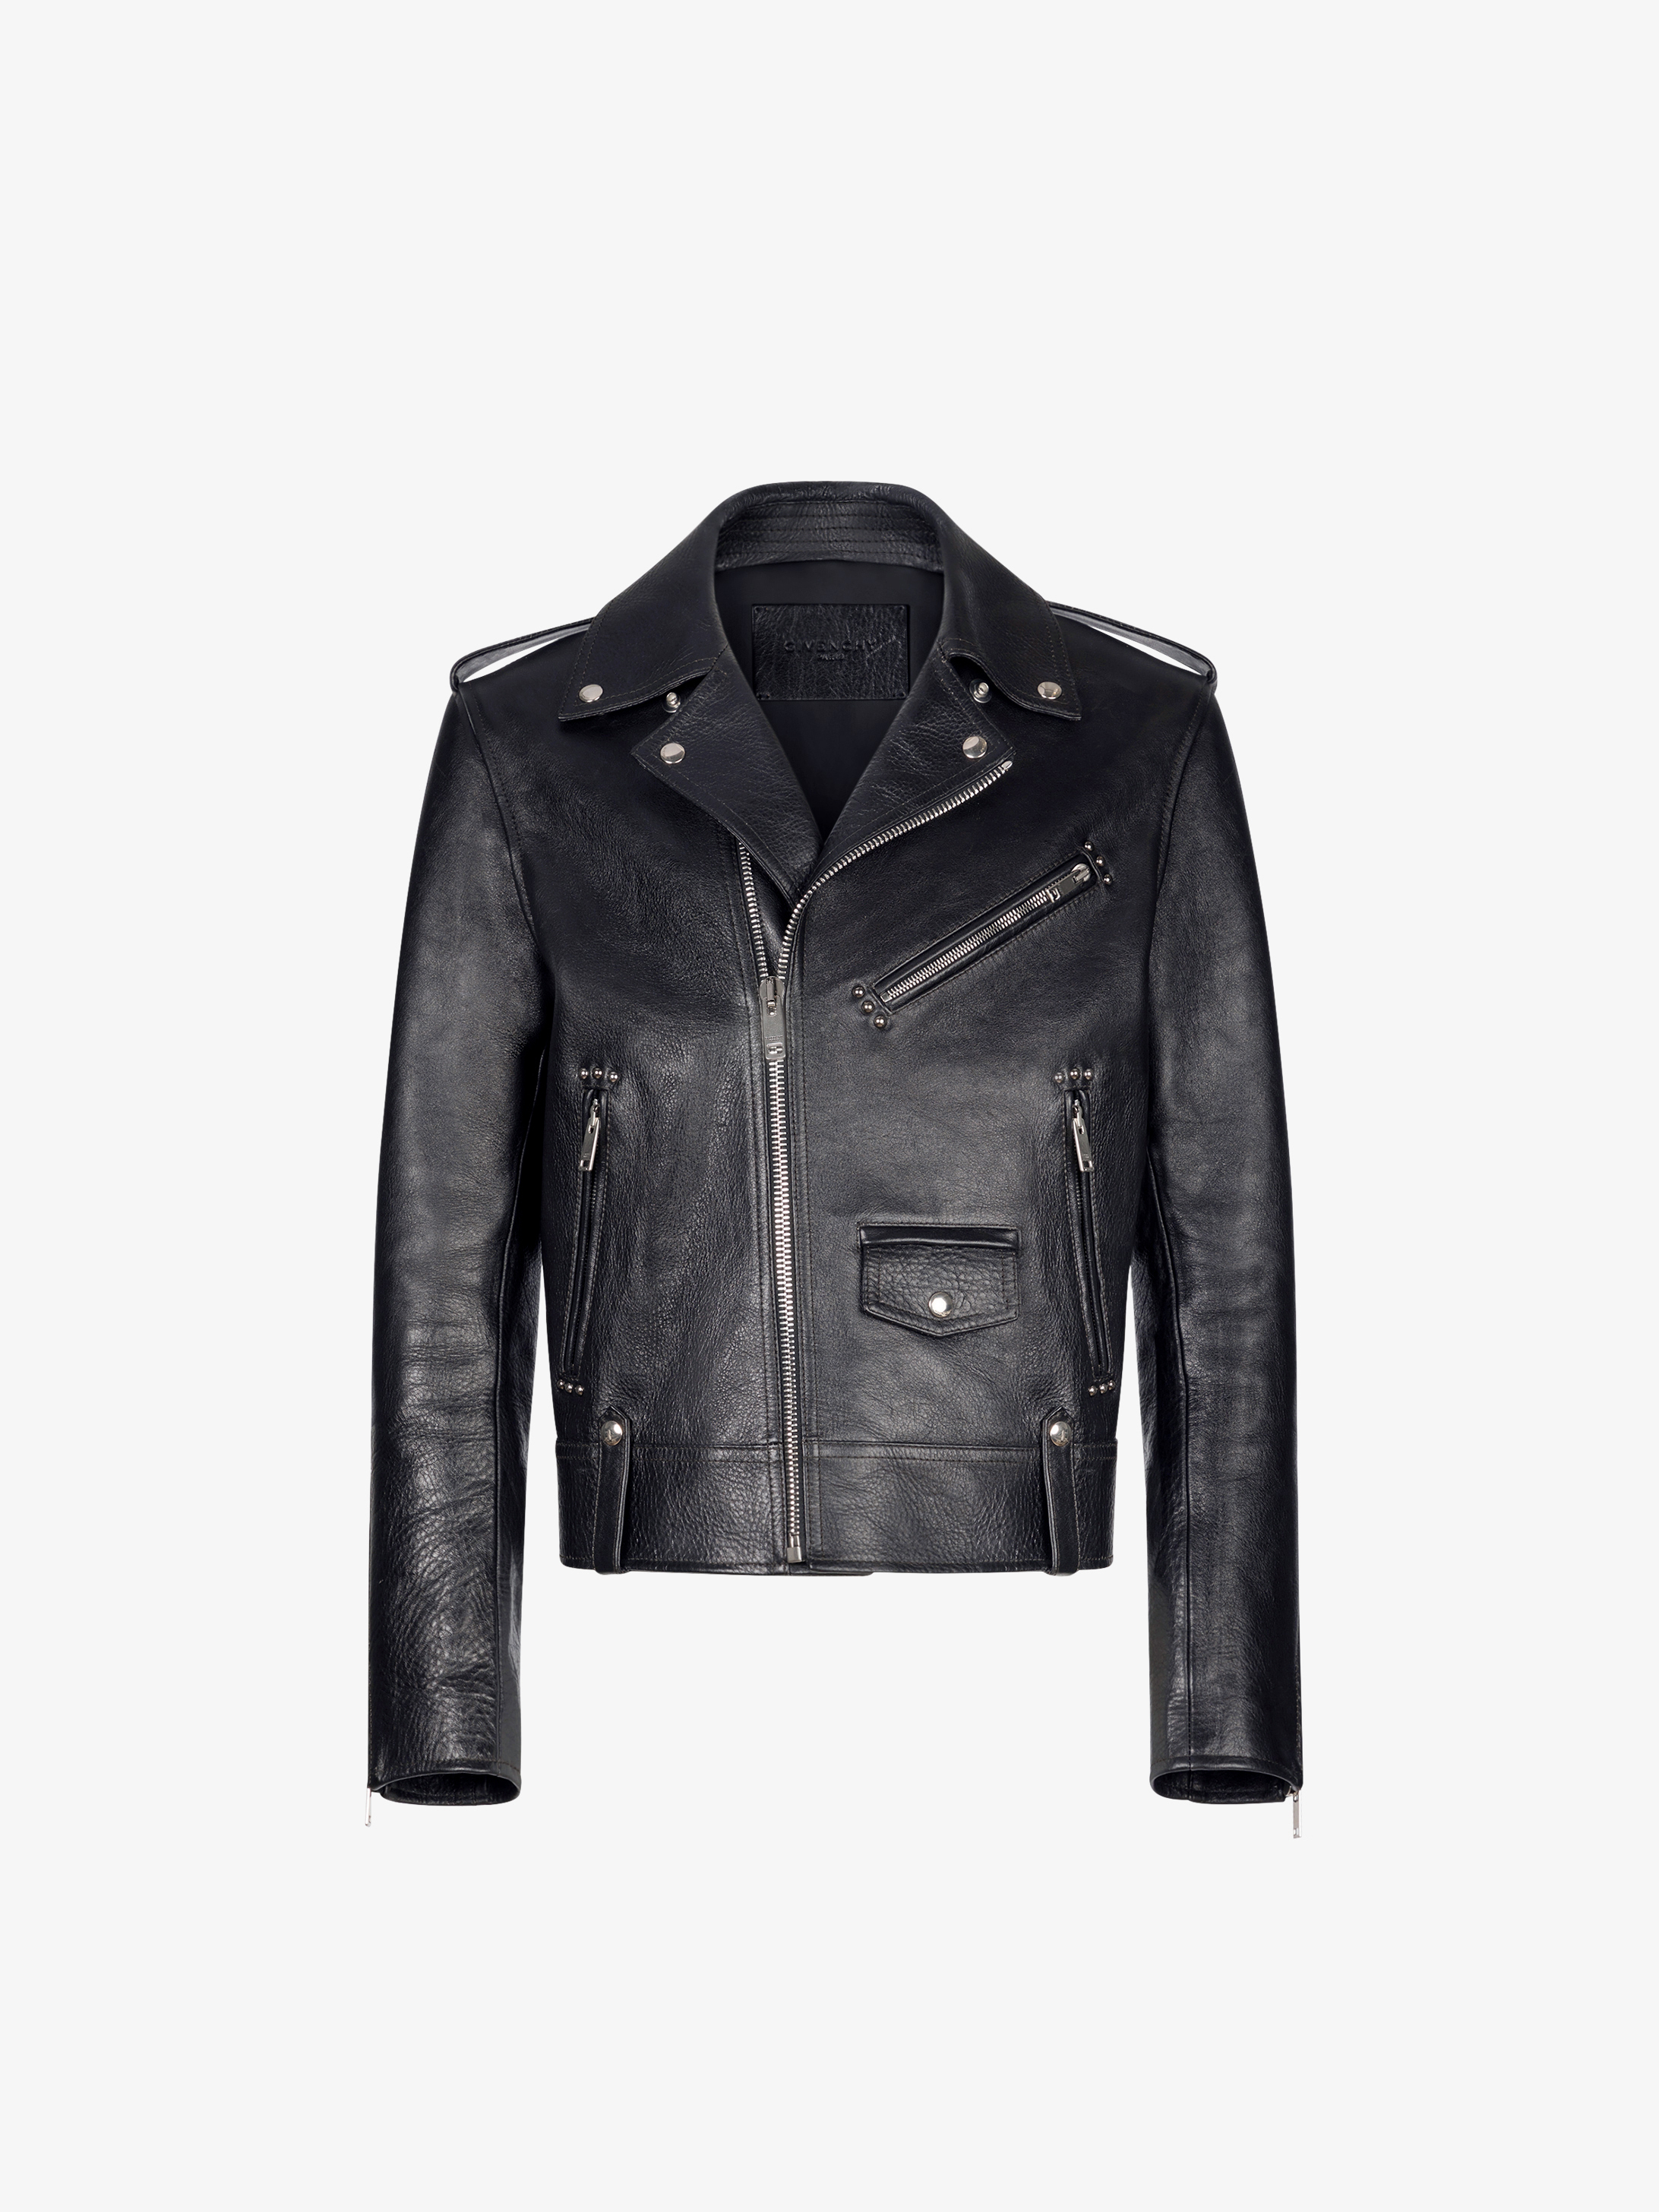 Perfecto jacket in leather with metallic details